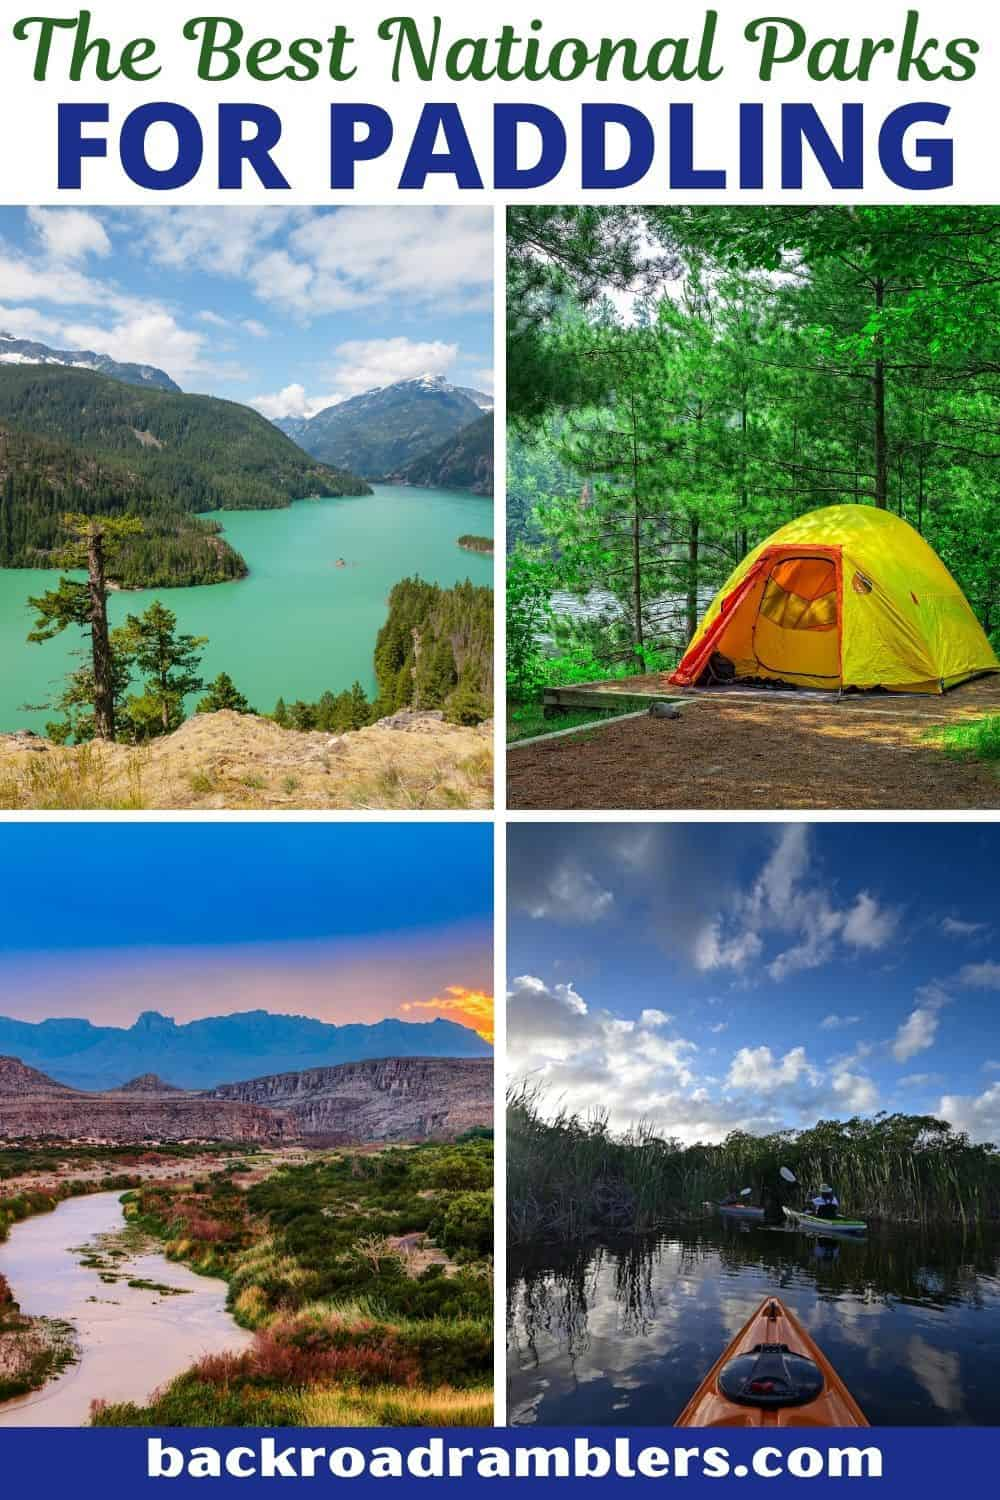 A collage of photos featuring national parks. Text overlay: The Best National Parks for Paddling.